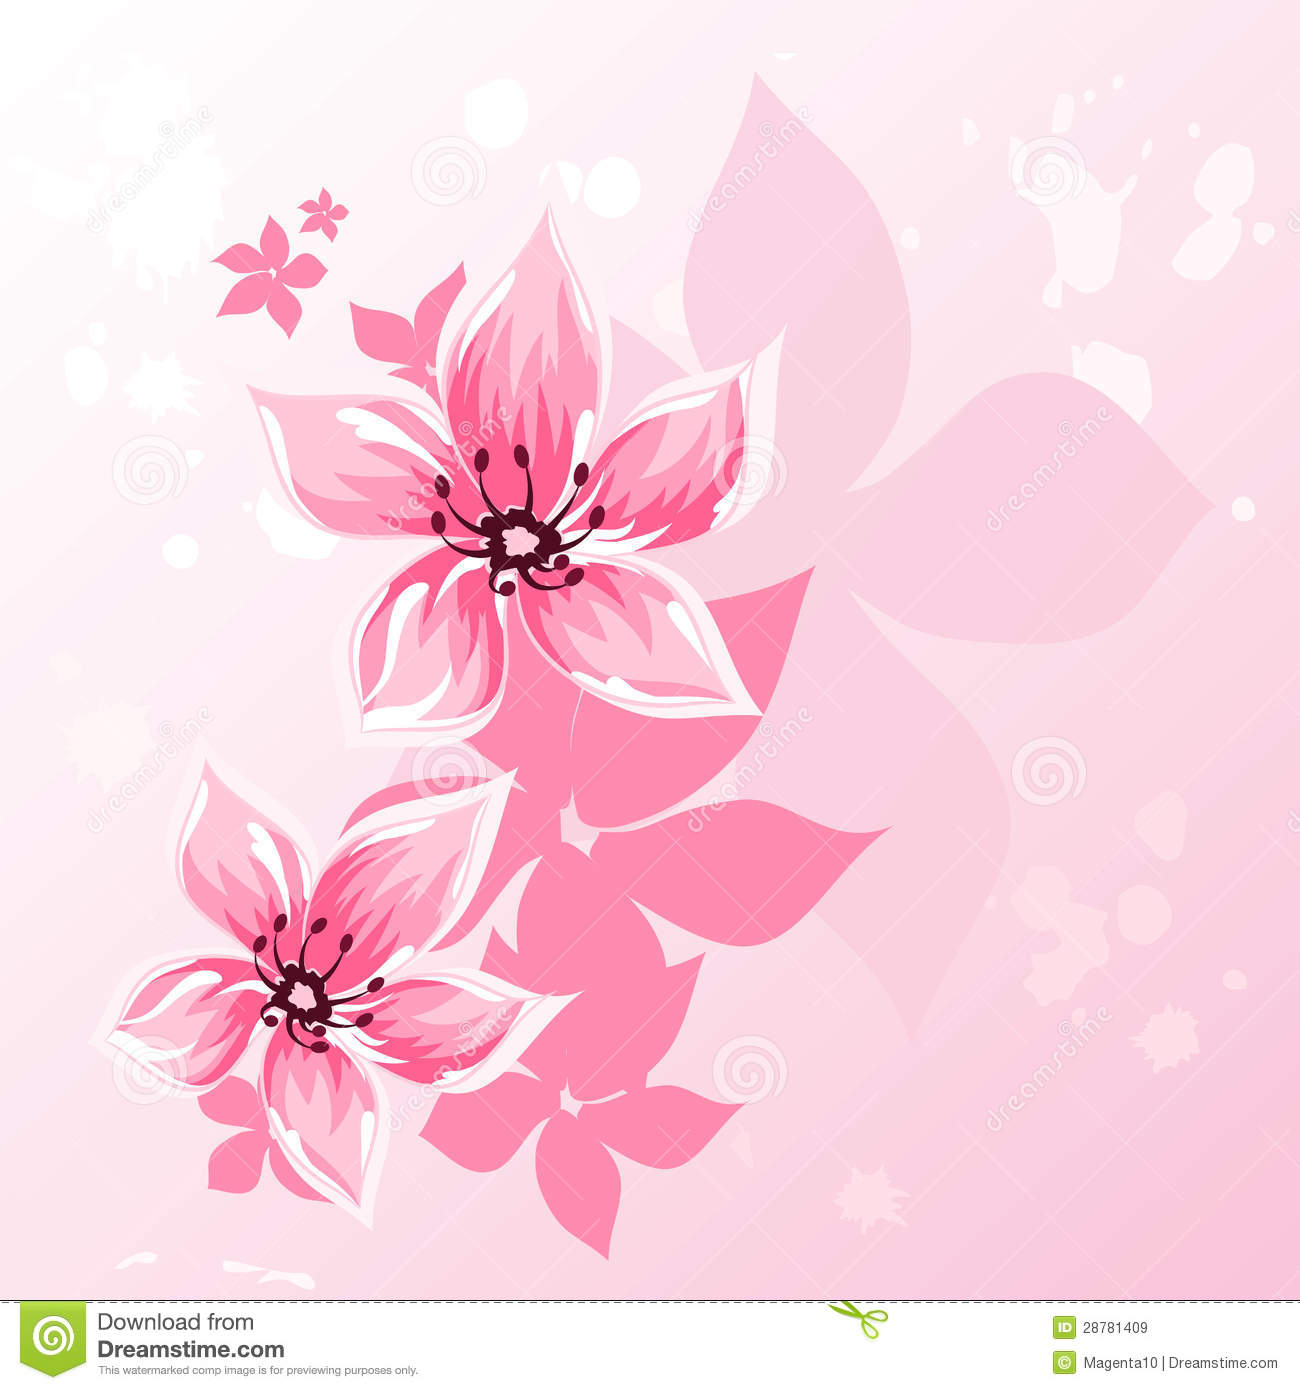 cherry blossoms online dating love bride and romances There are many sites that specialize in the asian dating market, but cherry blossoms is in this blossoms review my dream is for a world full of love and romance.